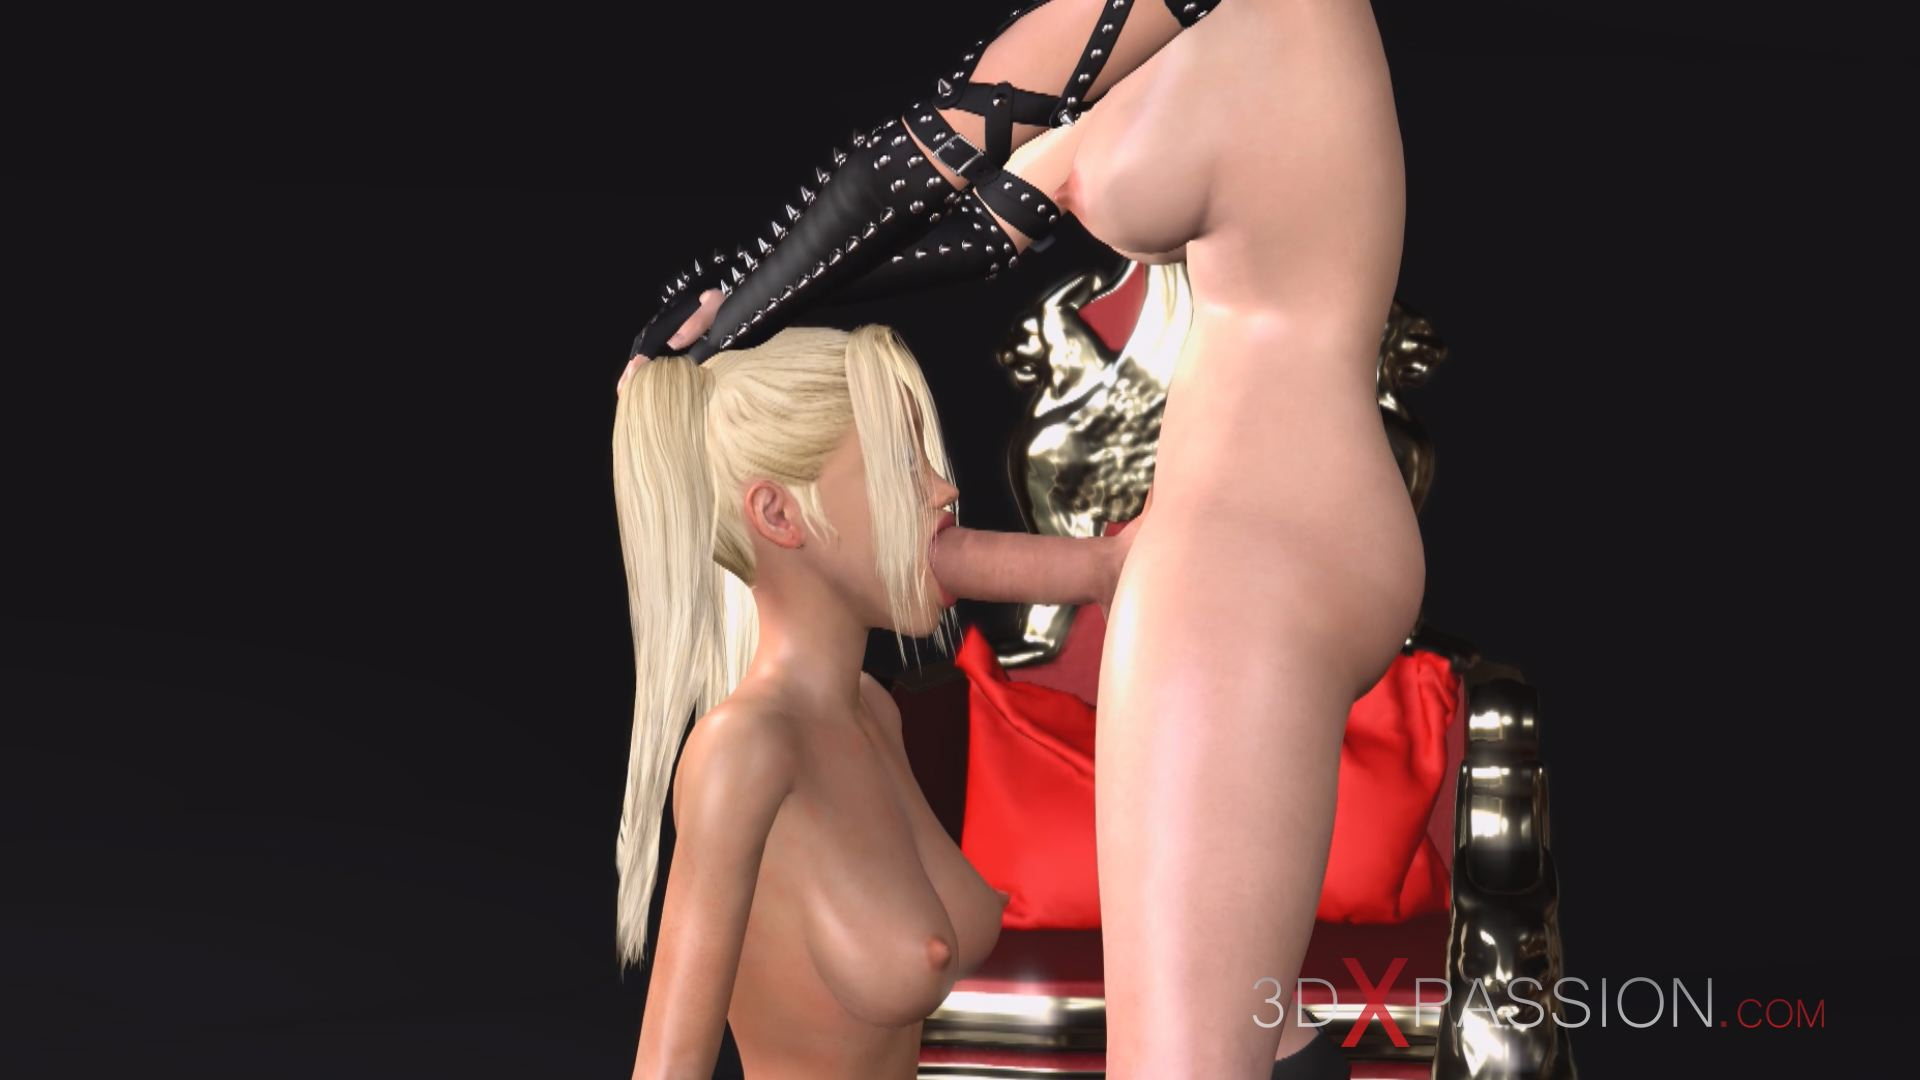 dickgirl giving rough blowjob hot teen blonde slaves dark